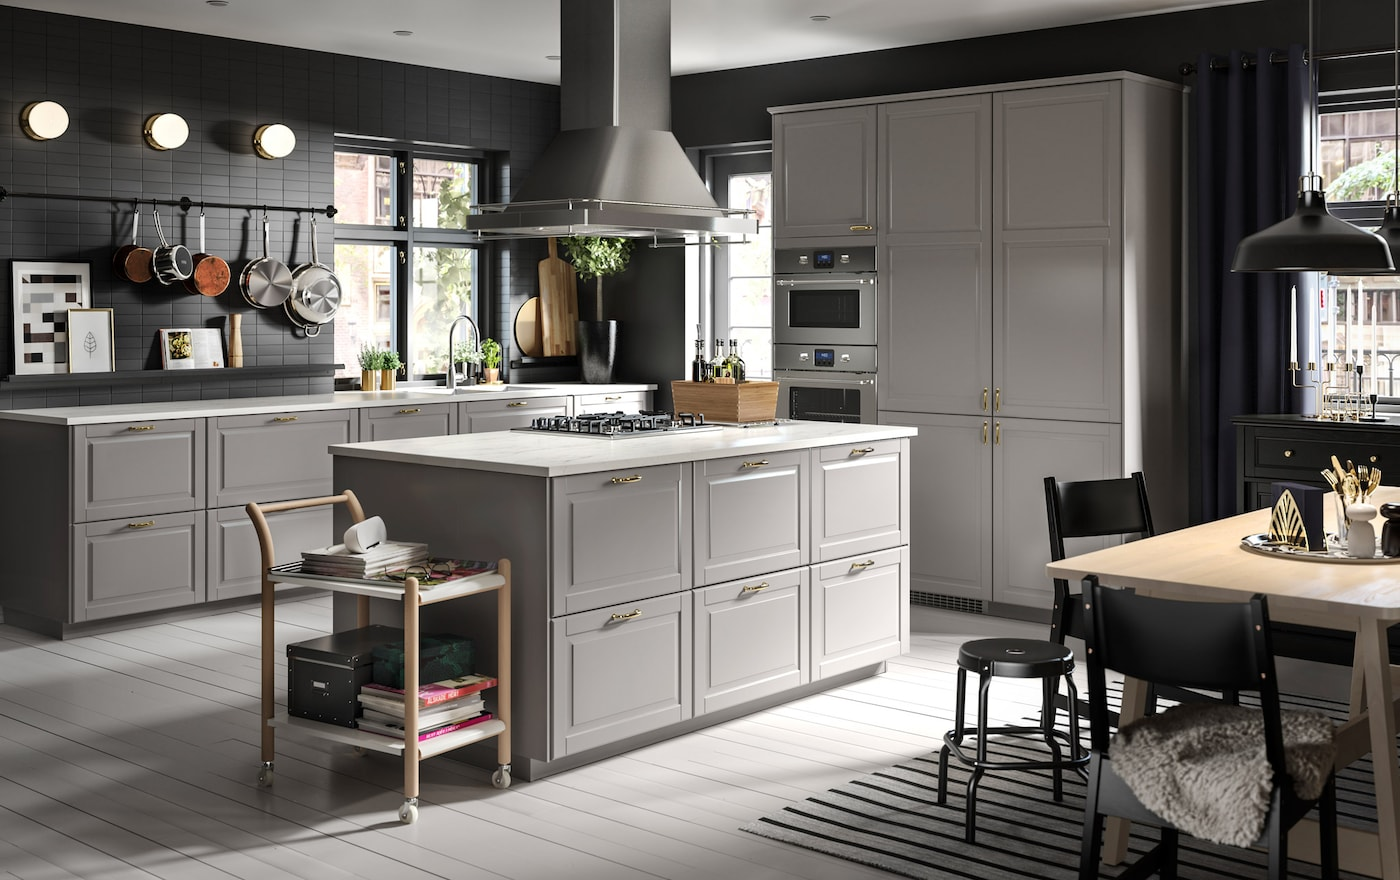 A spacious grey and white kitchen with a cooking island as the heart of the space.